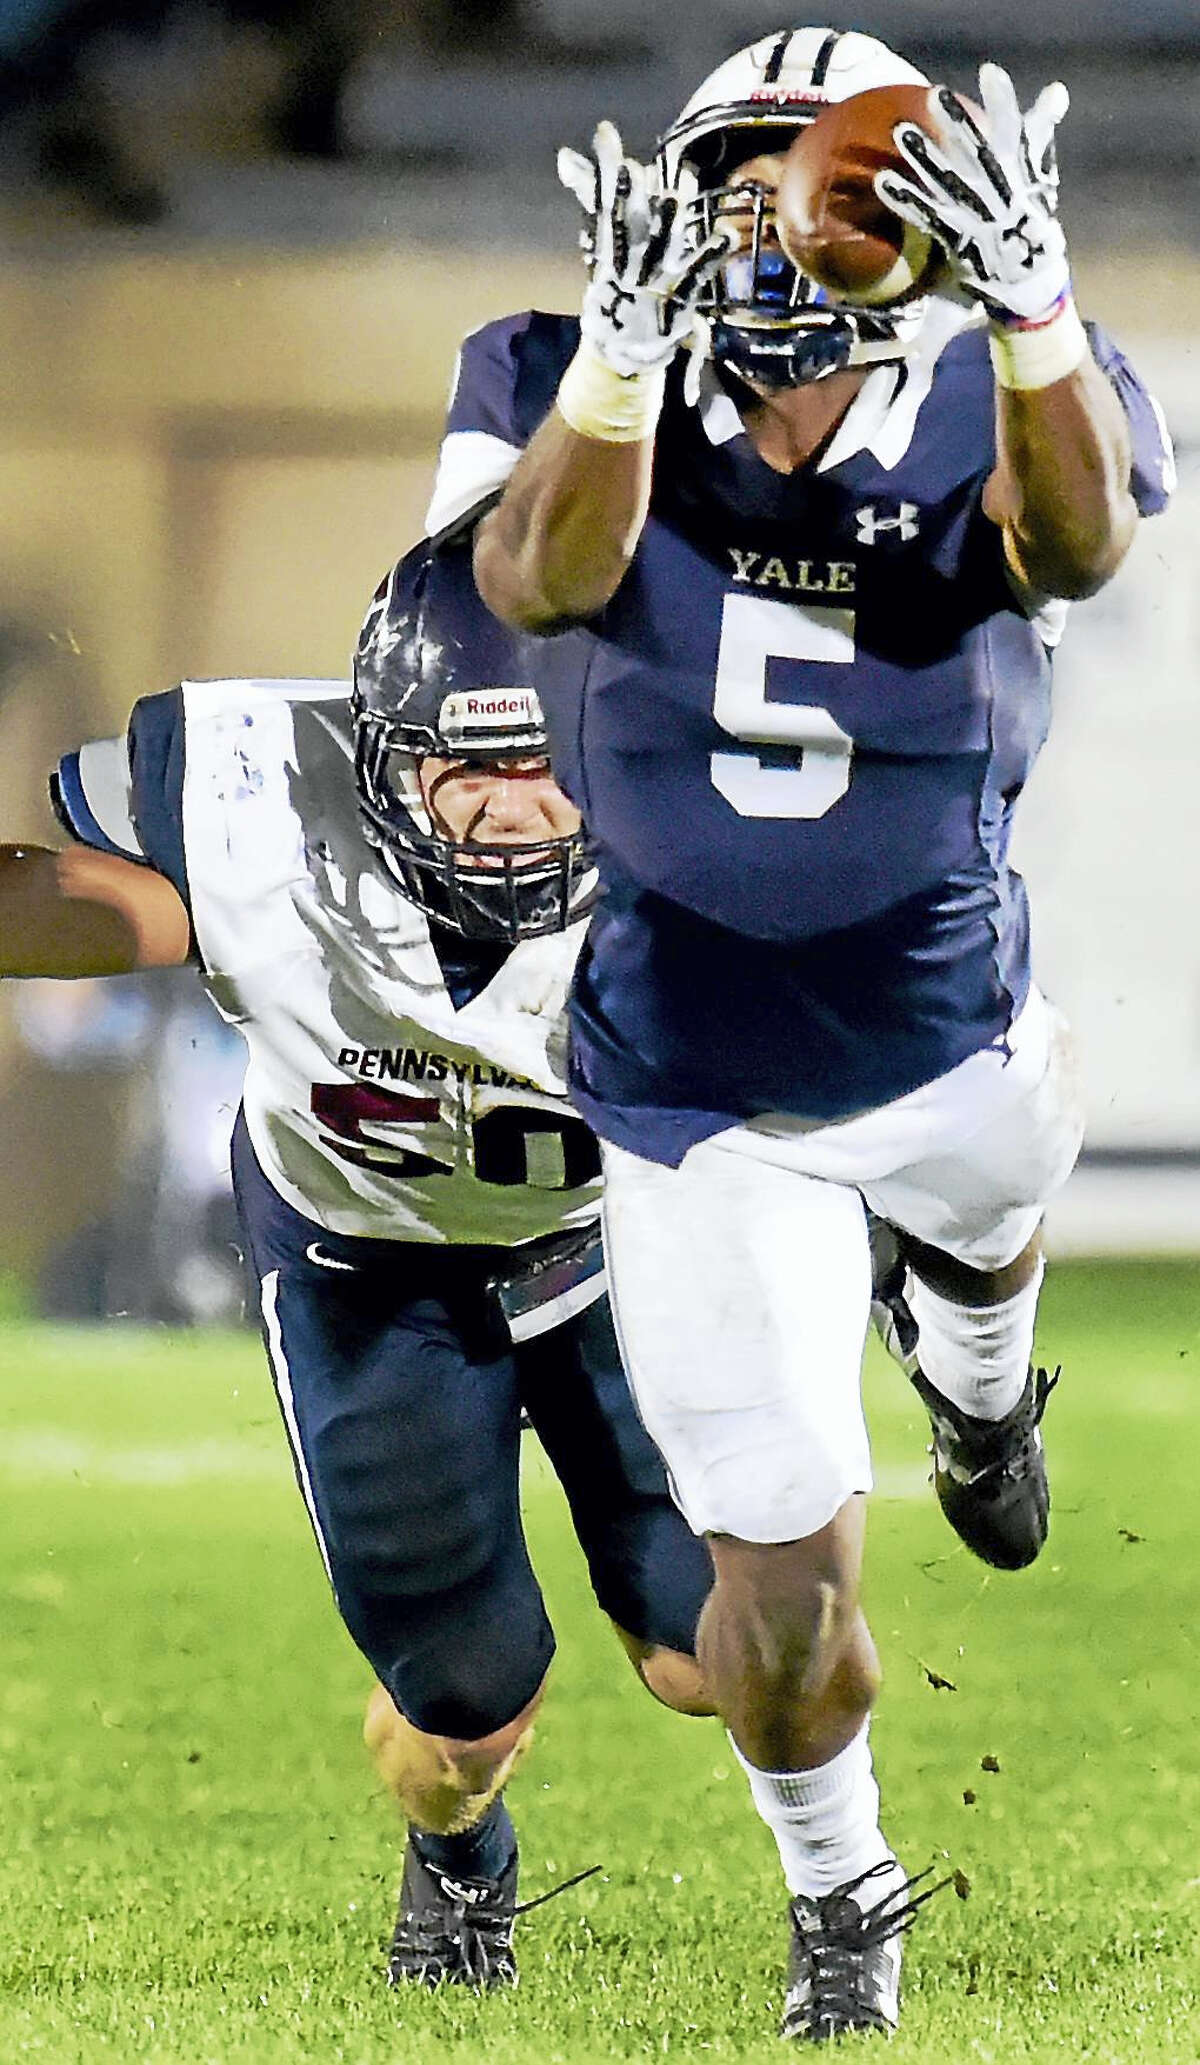 Yale's Alan Lamar of Yale reaches out for a pass against Penn defender Alex Weber in the first quarter on Friday.